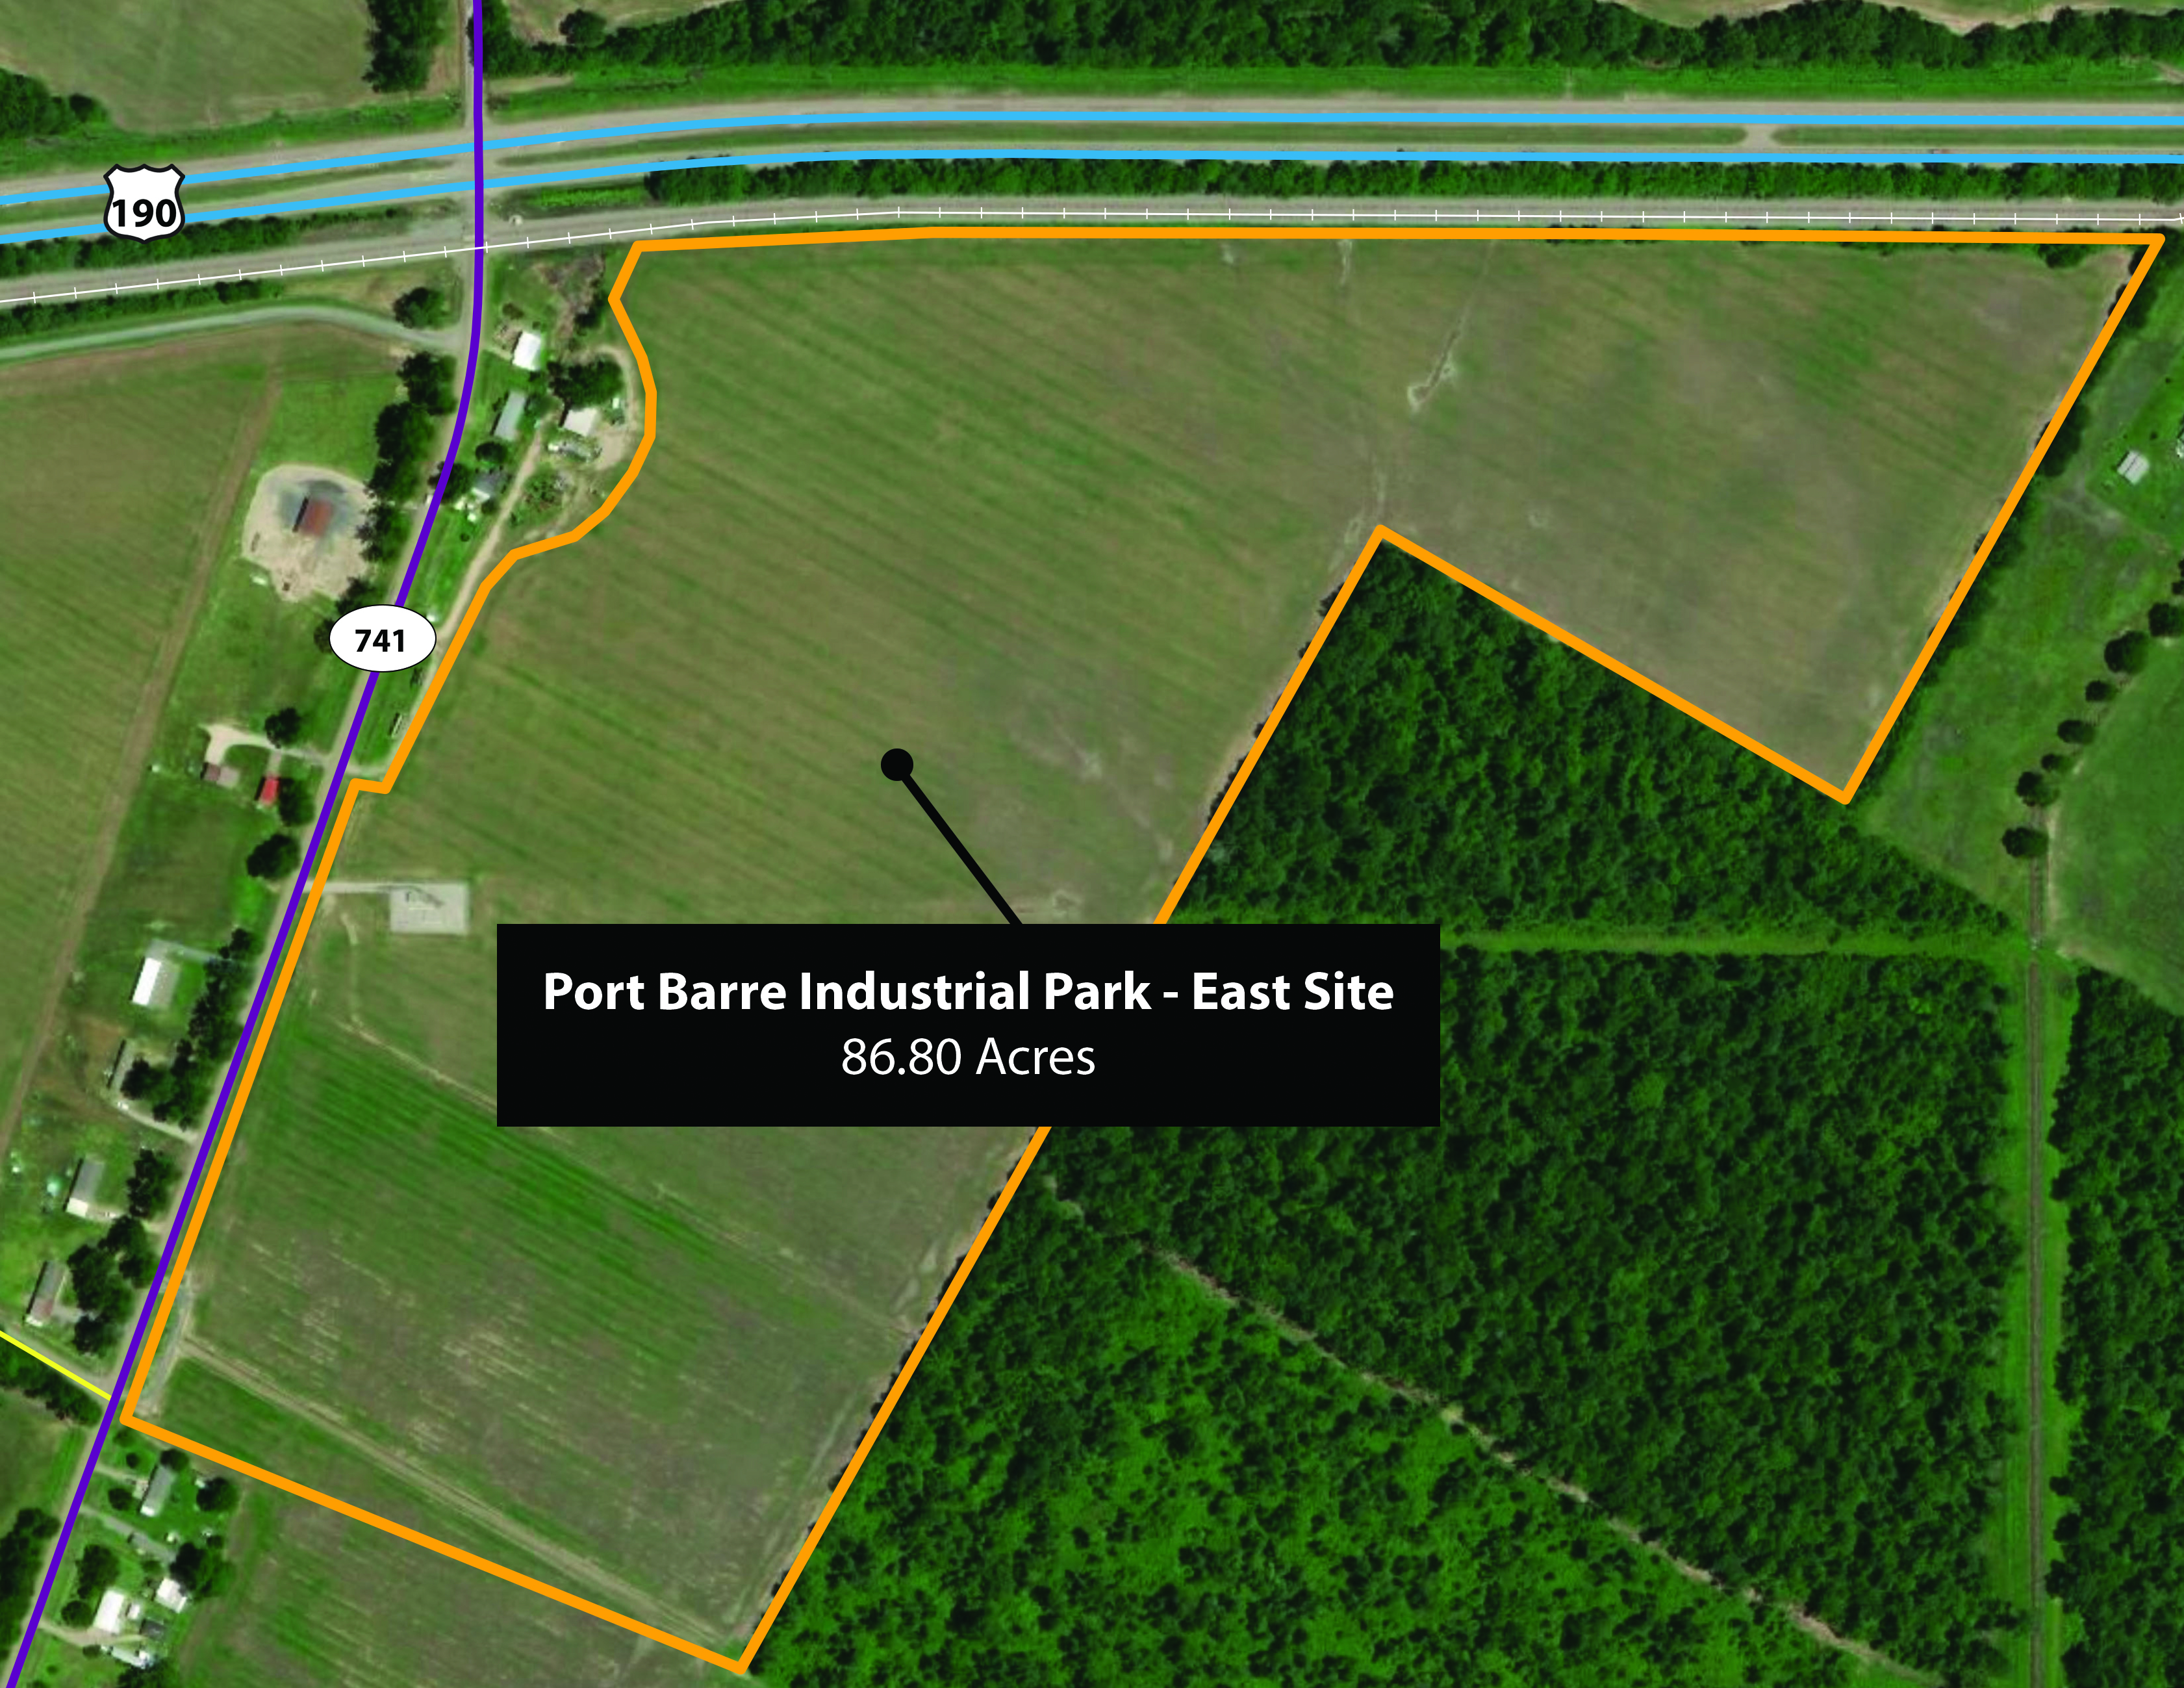 Port Barre Industrial Park East Site Aerial Map